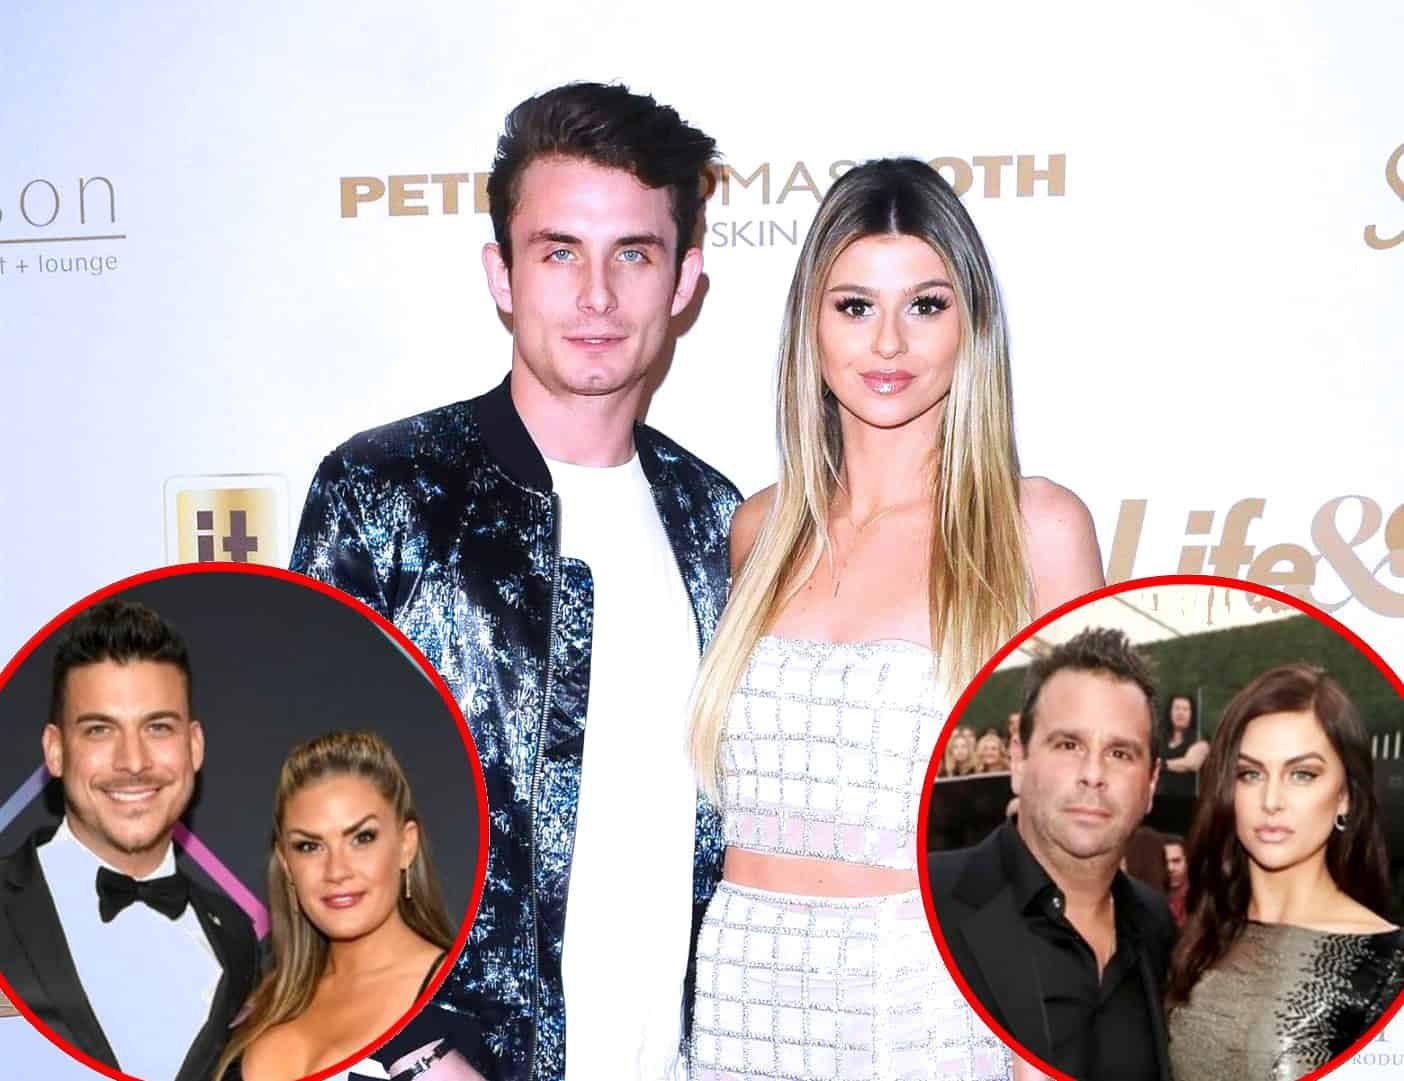 Will Vanderpump Rules' James Kennedy Attend Jax or Lala's Wedding?